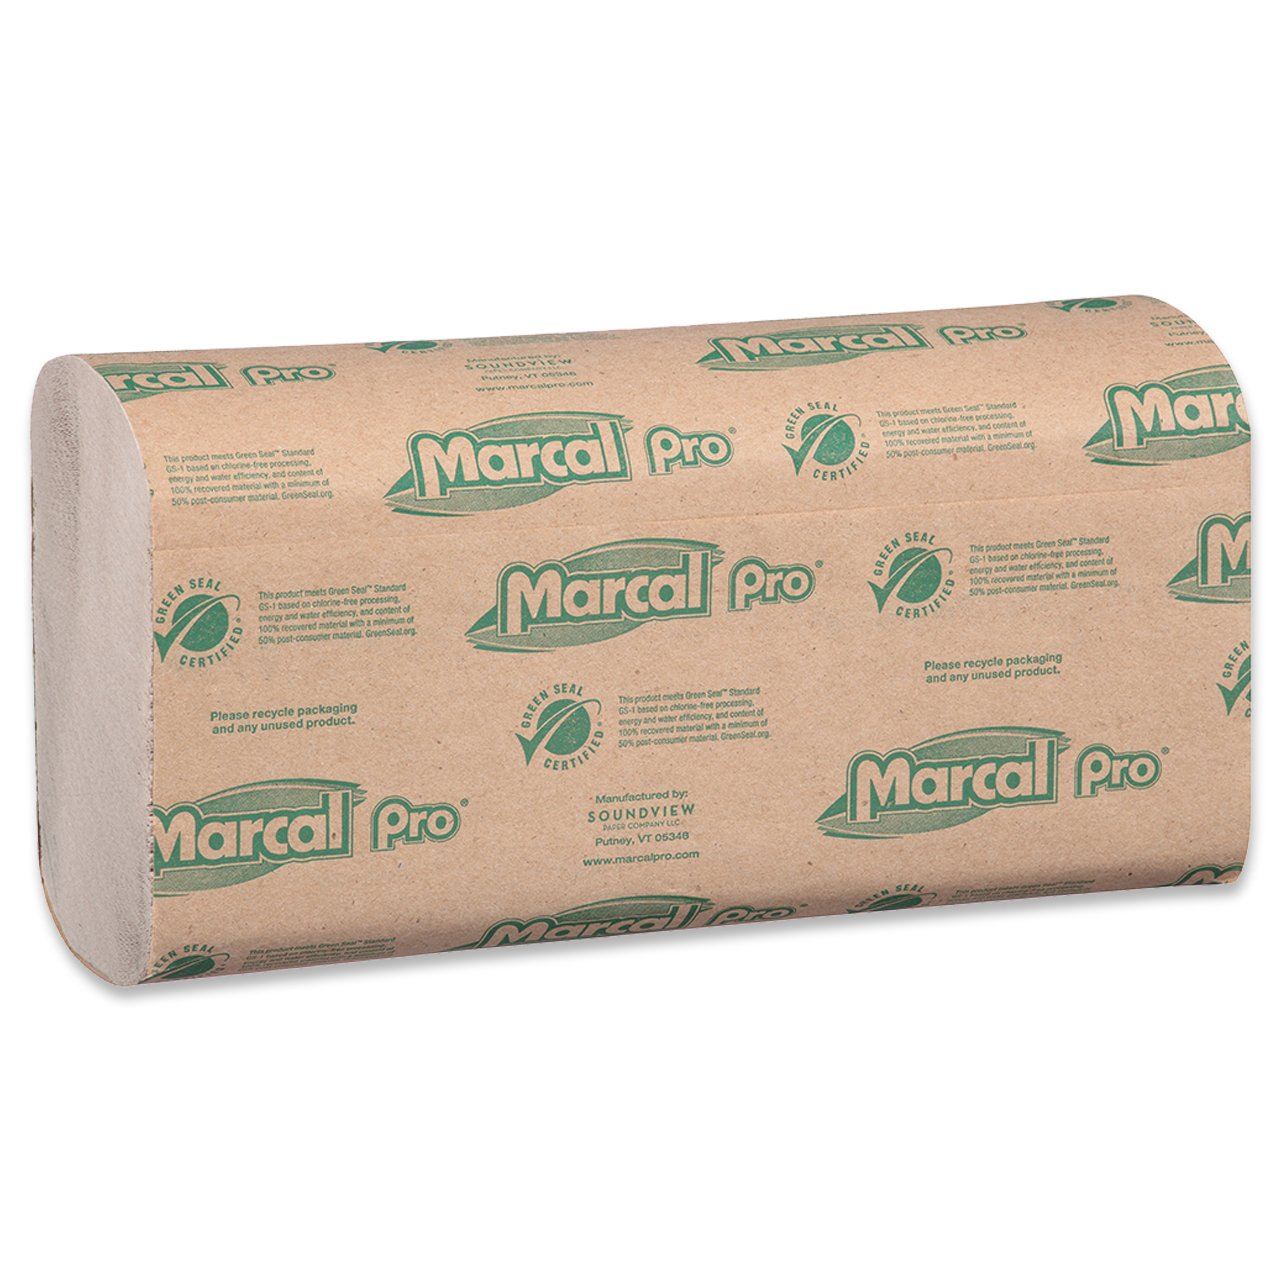 Amazon.com: Marcal Pro Multi-Fold Paper Towels, 100% Recycled, 1-Ply, Natural Color Hand Towels, 250 Per Pack, 16 Packs per Case for 4000 Total Green Seal ...